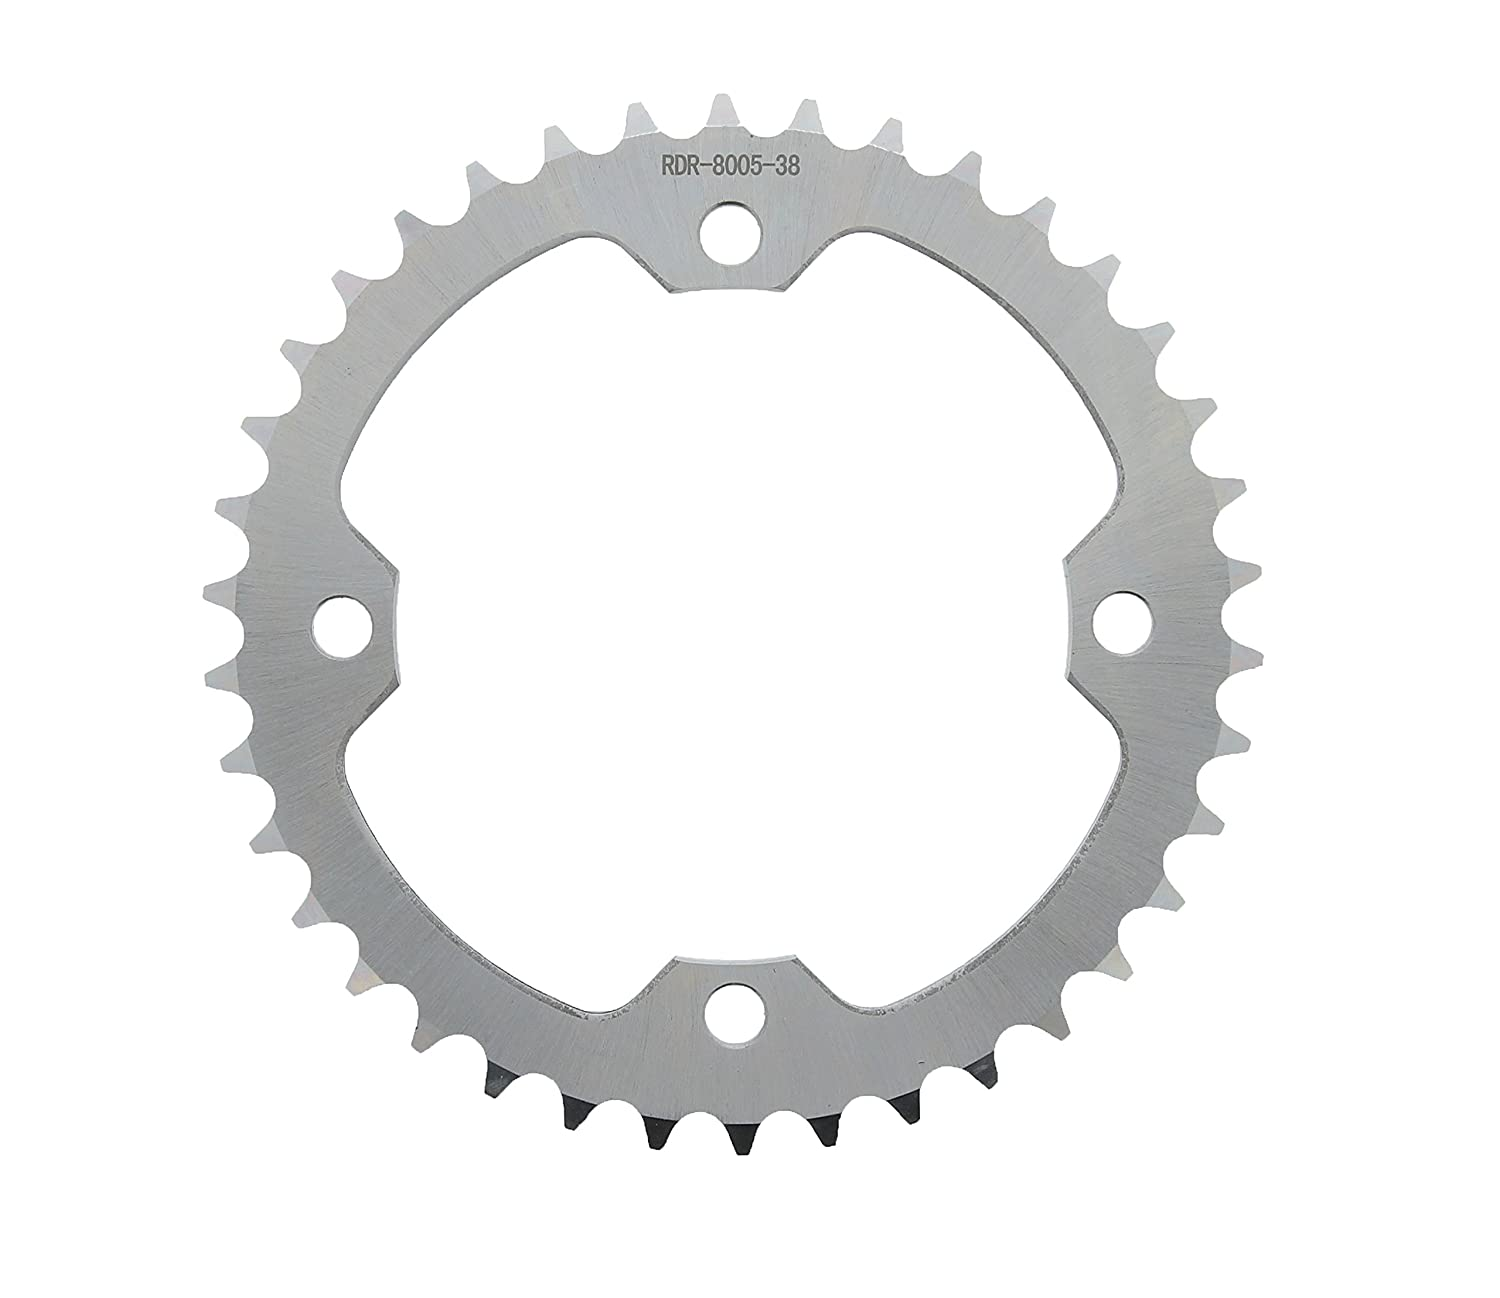 Red Non O-Ring 98L Chain /& Silver Sprocket 14//38 06-09 fits Yamaha YFM700 700 Raptor